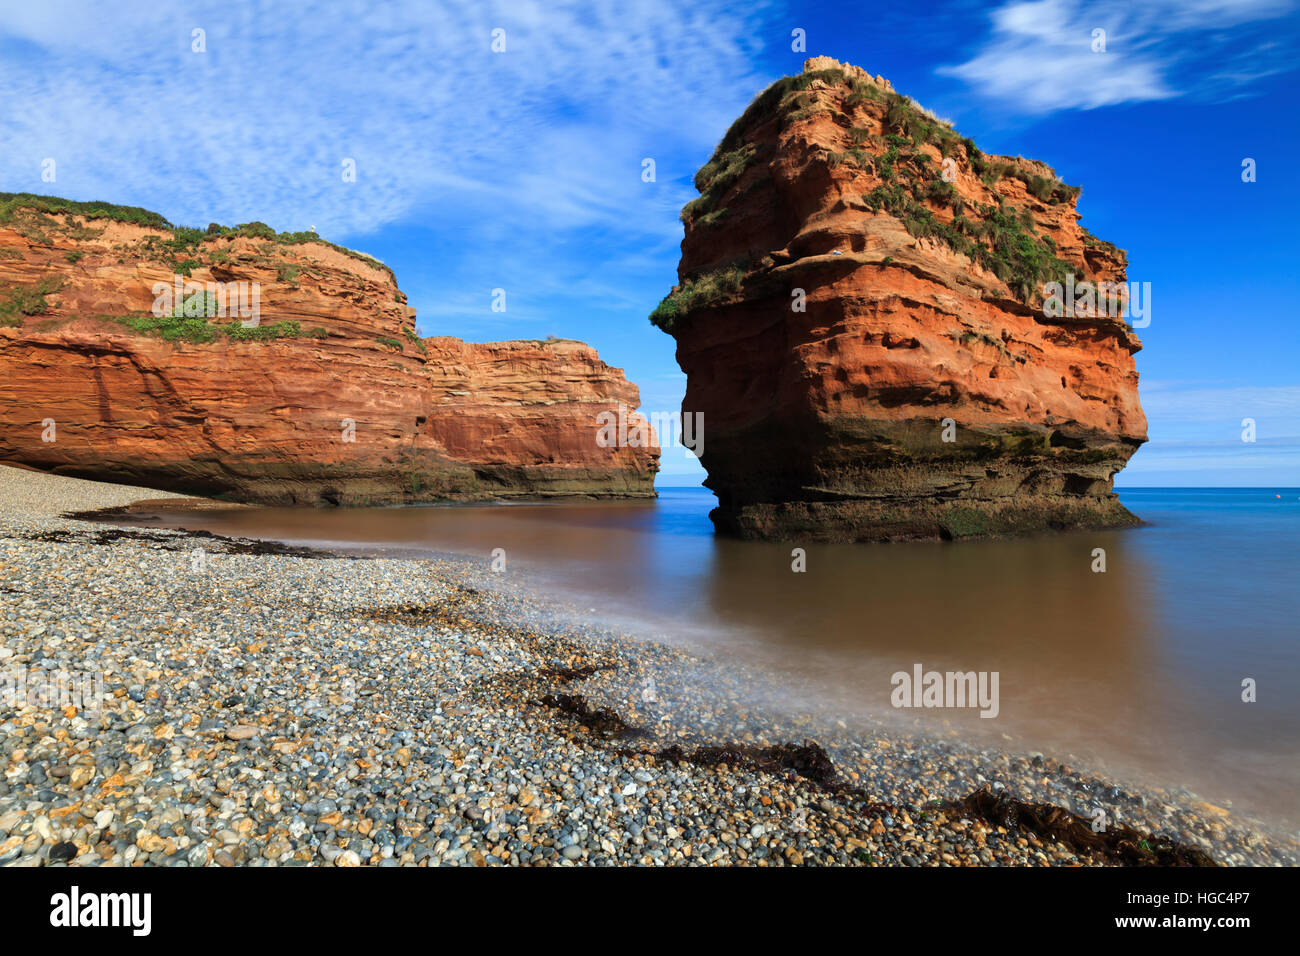 A sandstone sea stack at Ladram Bay in South East Devon. - Stock Image